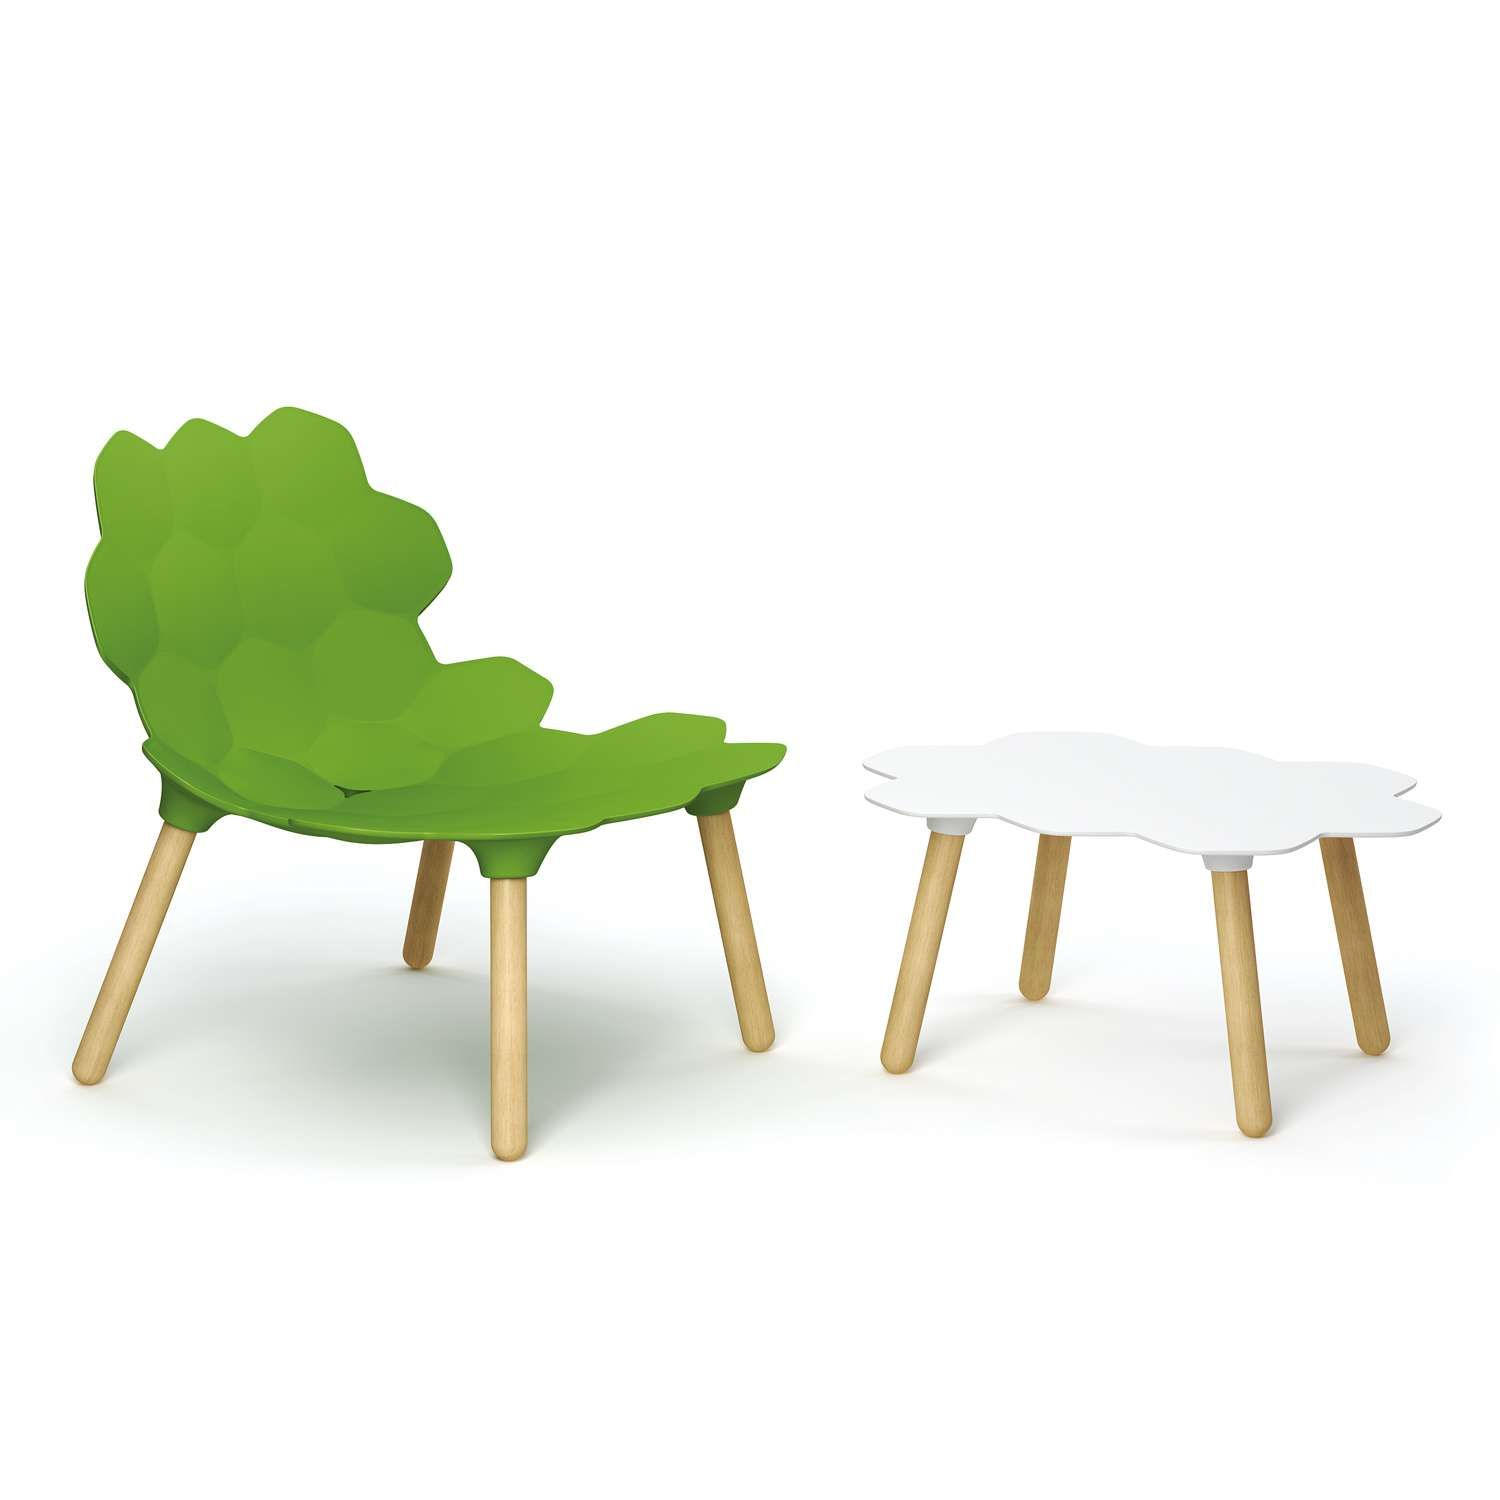 In Use With The Tarta Table Sold Separately Coffee Table White